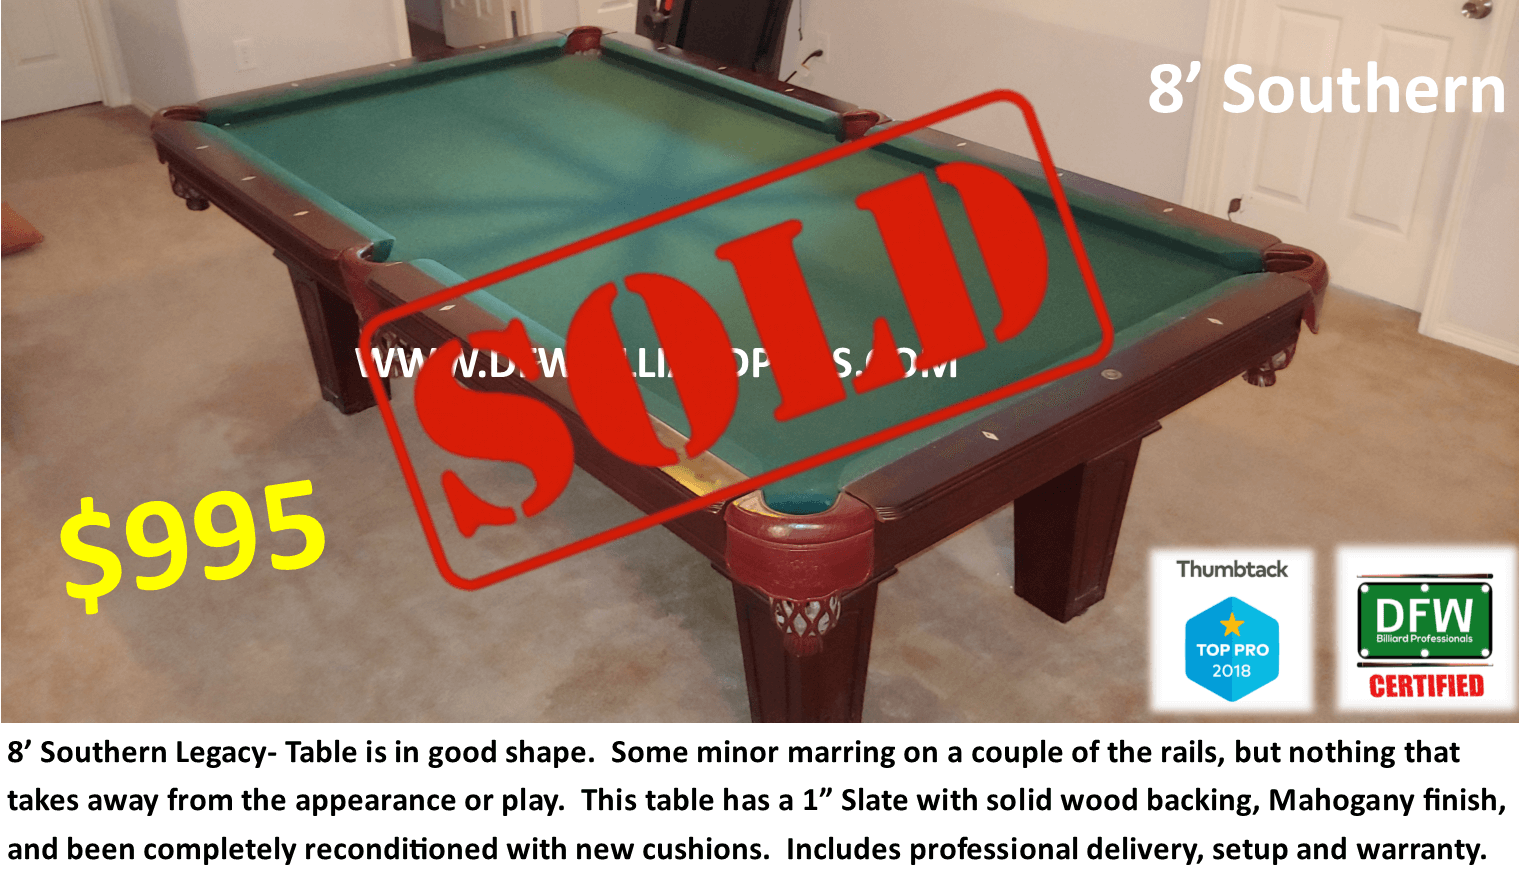 Sold Certified Table